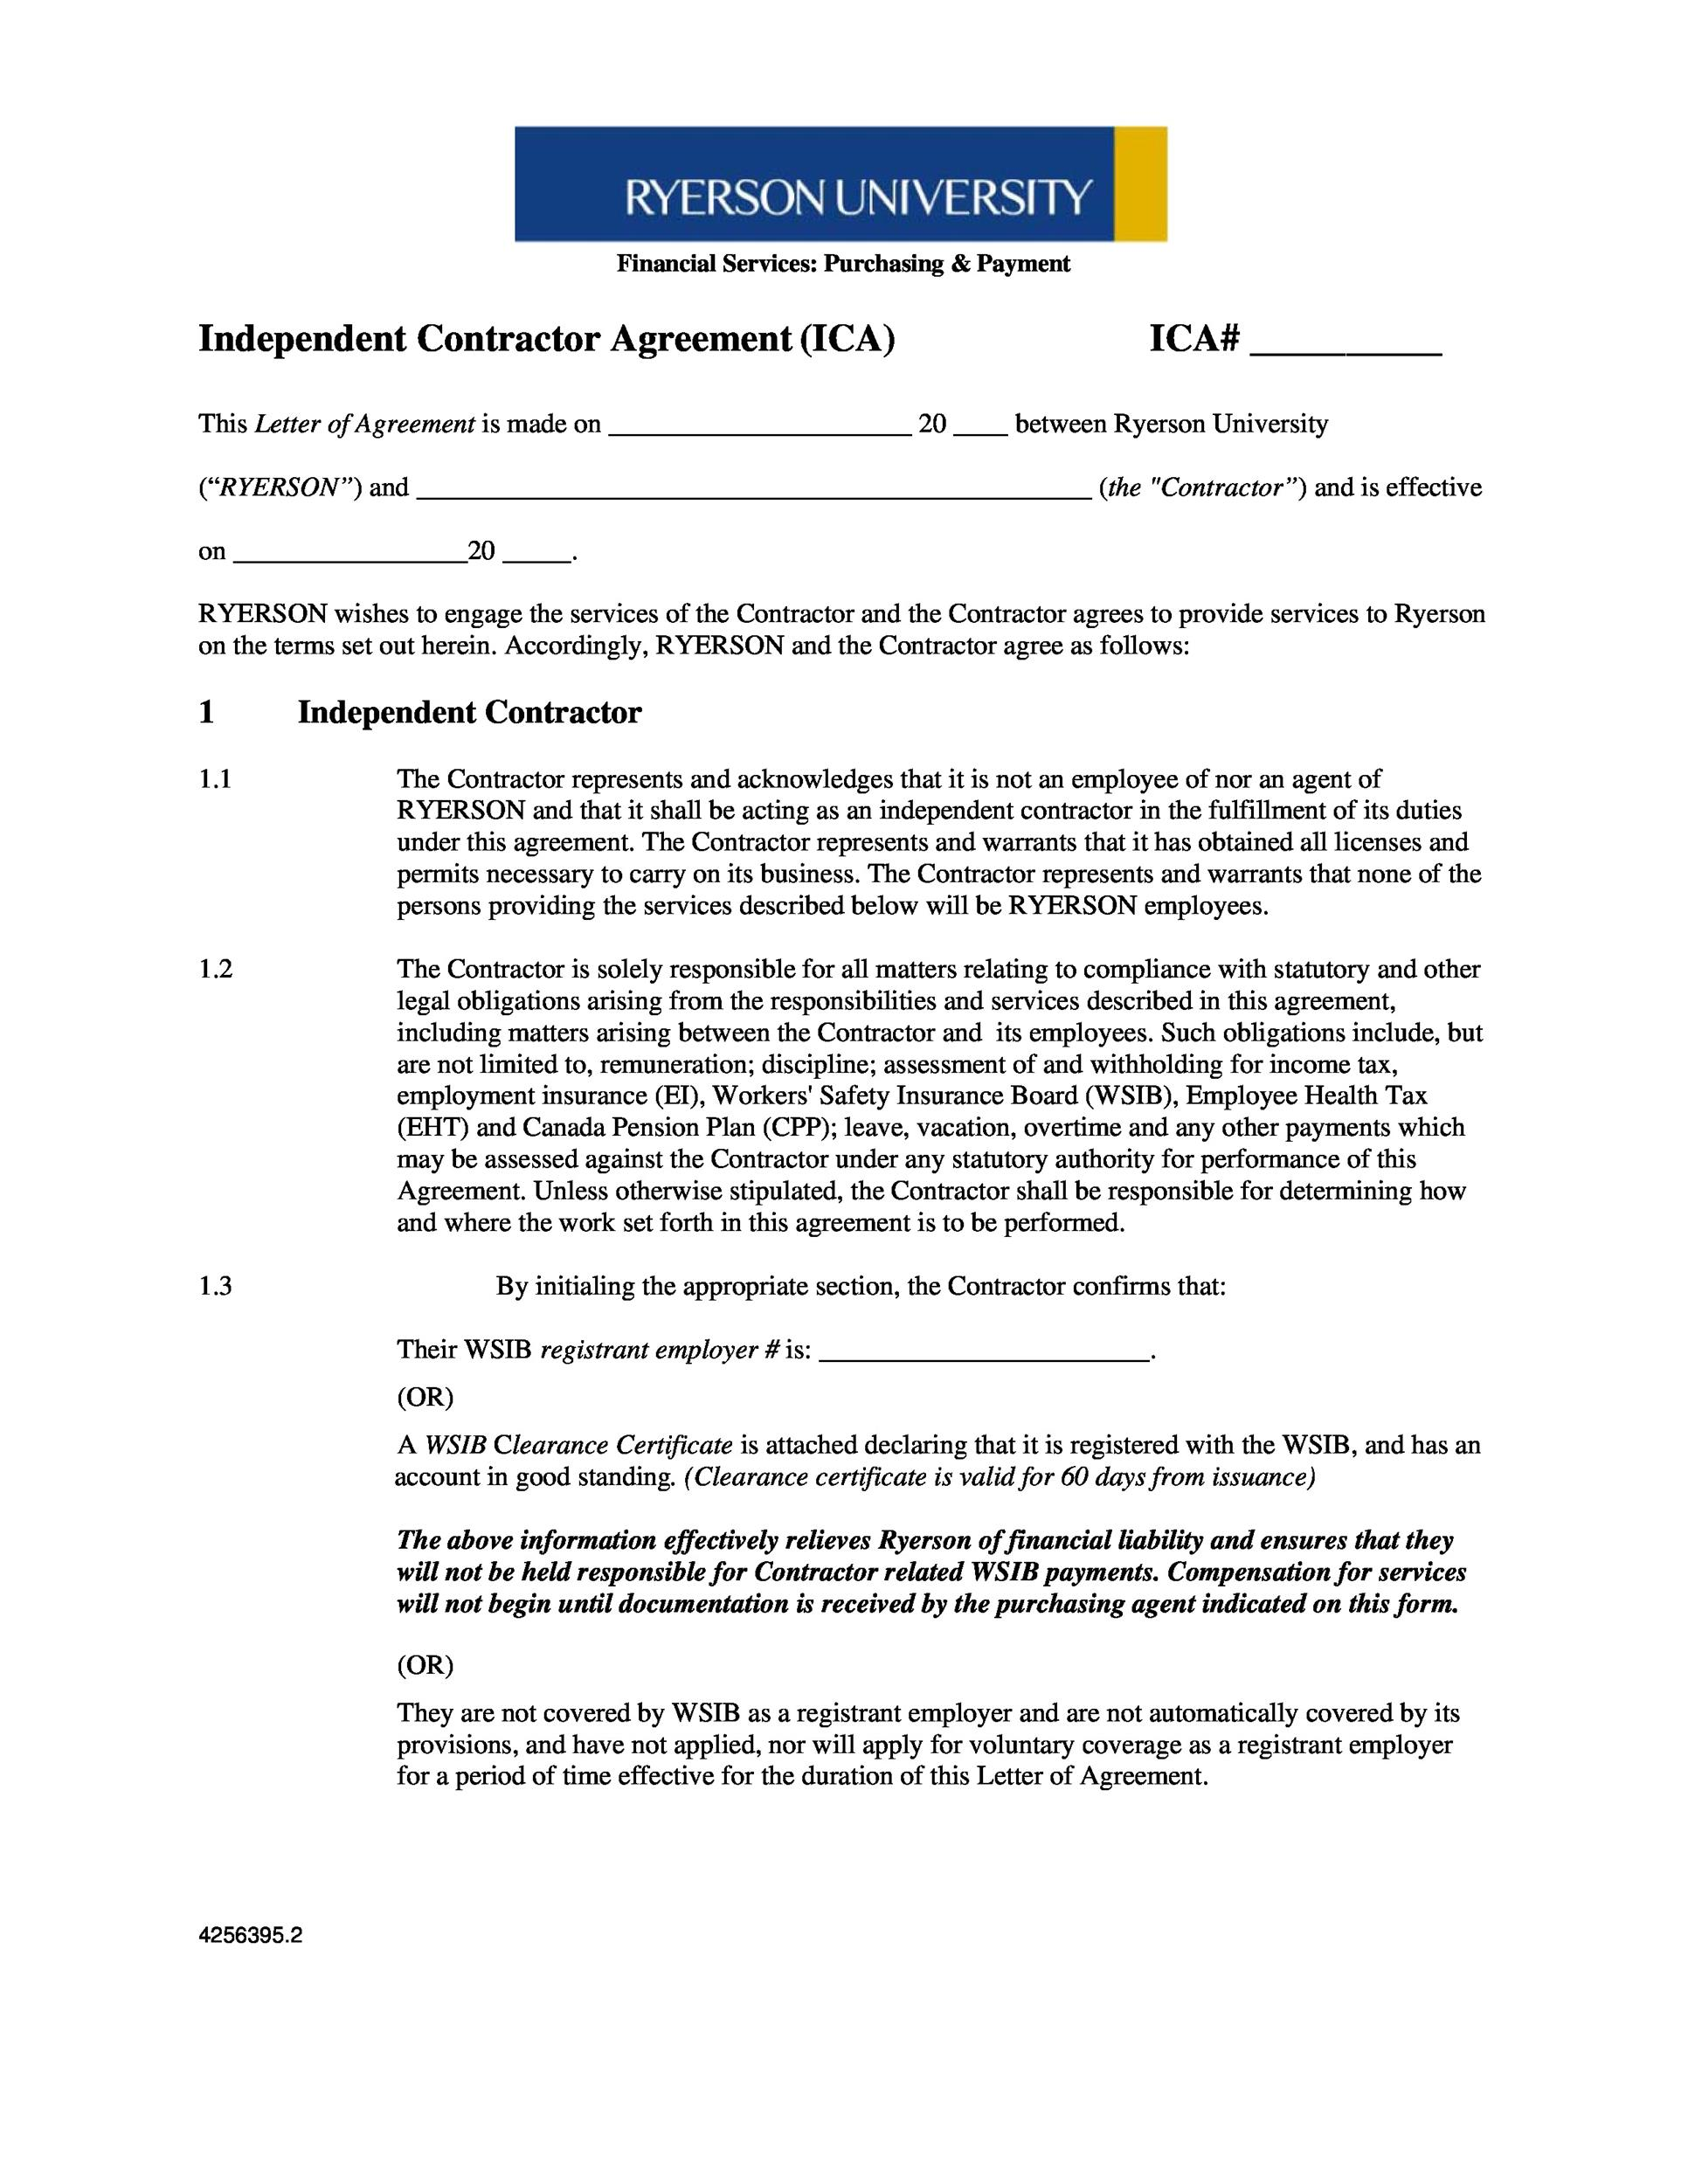 50 FREE Independent Contractor Agreement Forms & Templates